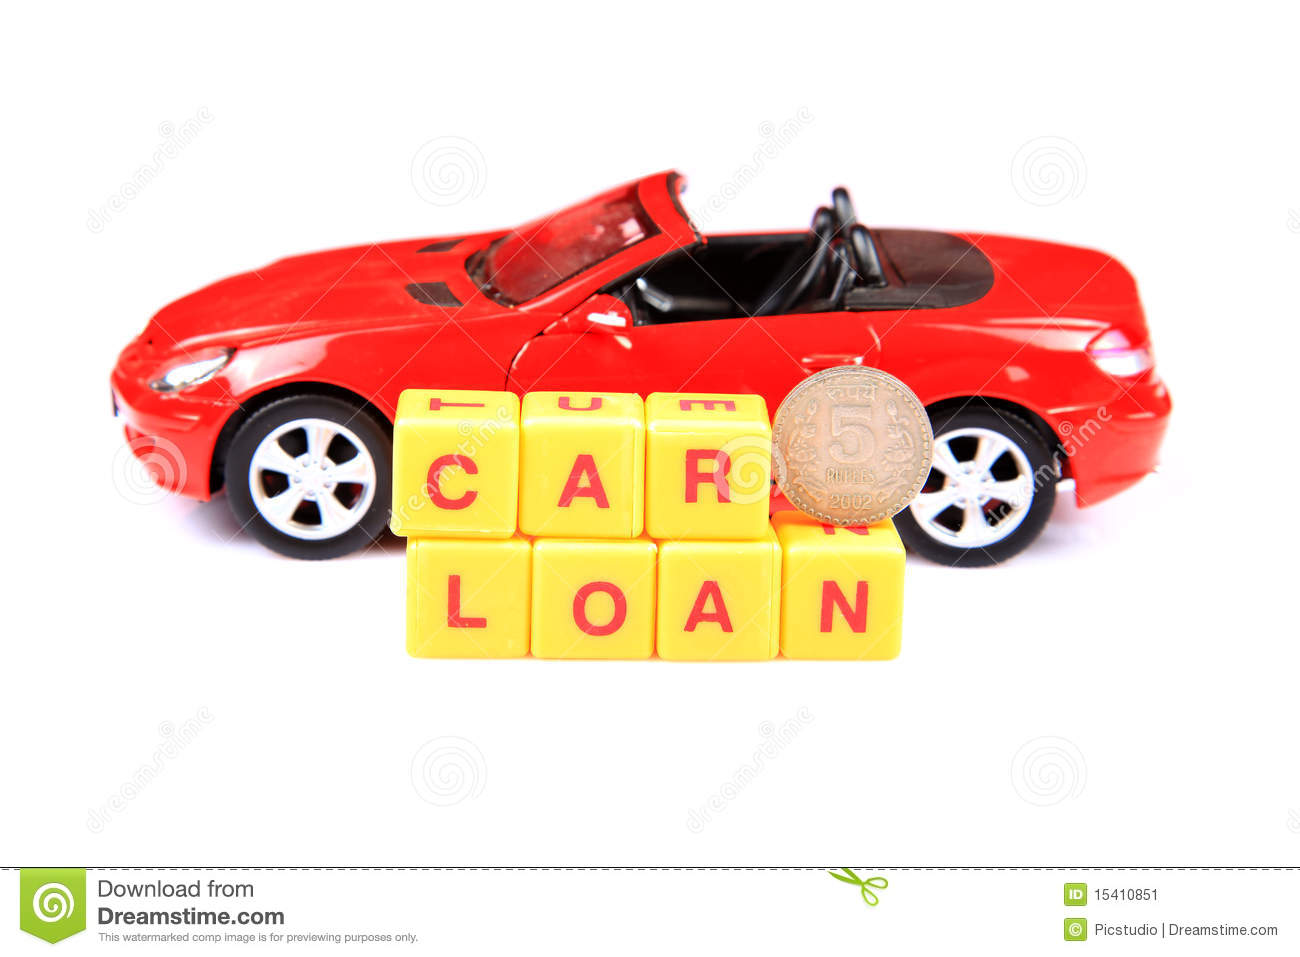 How To Get A Car Loan Fast With Bad Credit